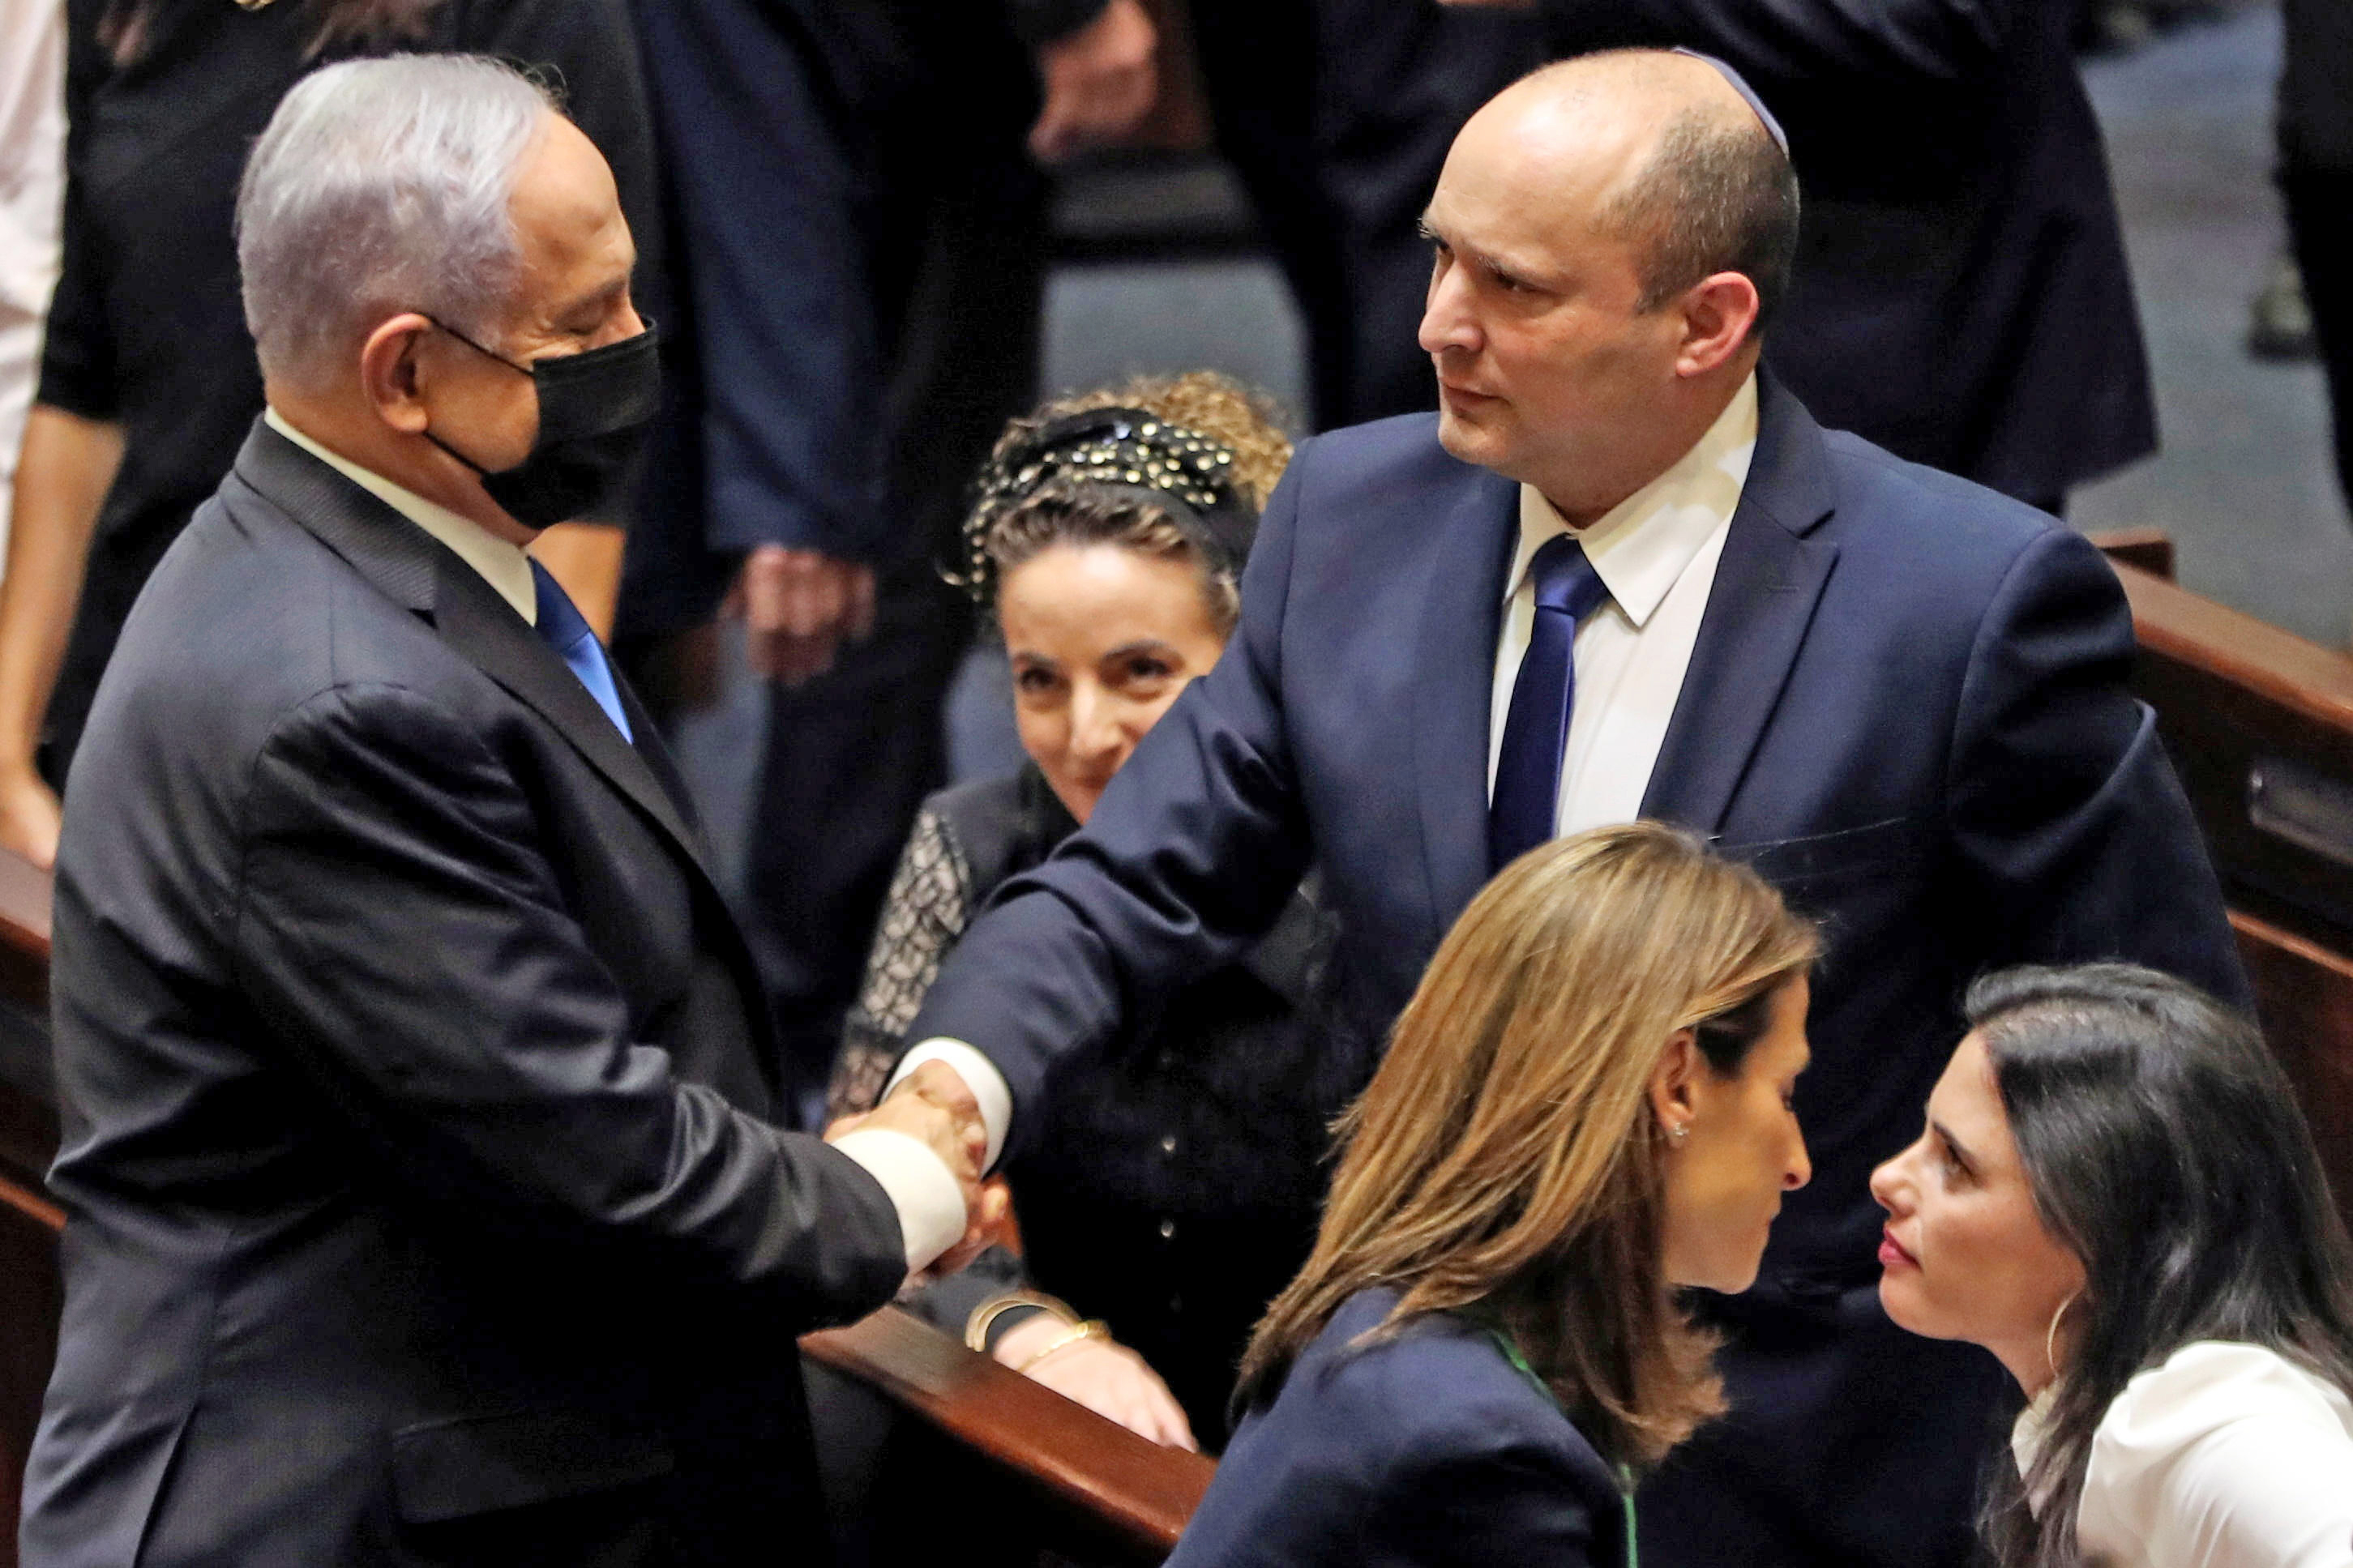 Incoming Prime Minister Naftali Bennett (right) shakes hands with Benjamin Netanyahu. Photo: Reuters